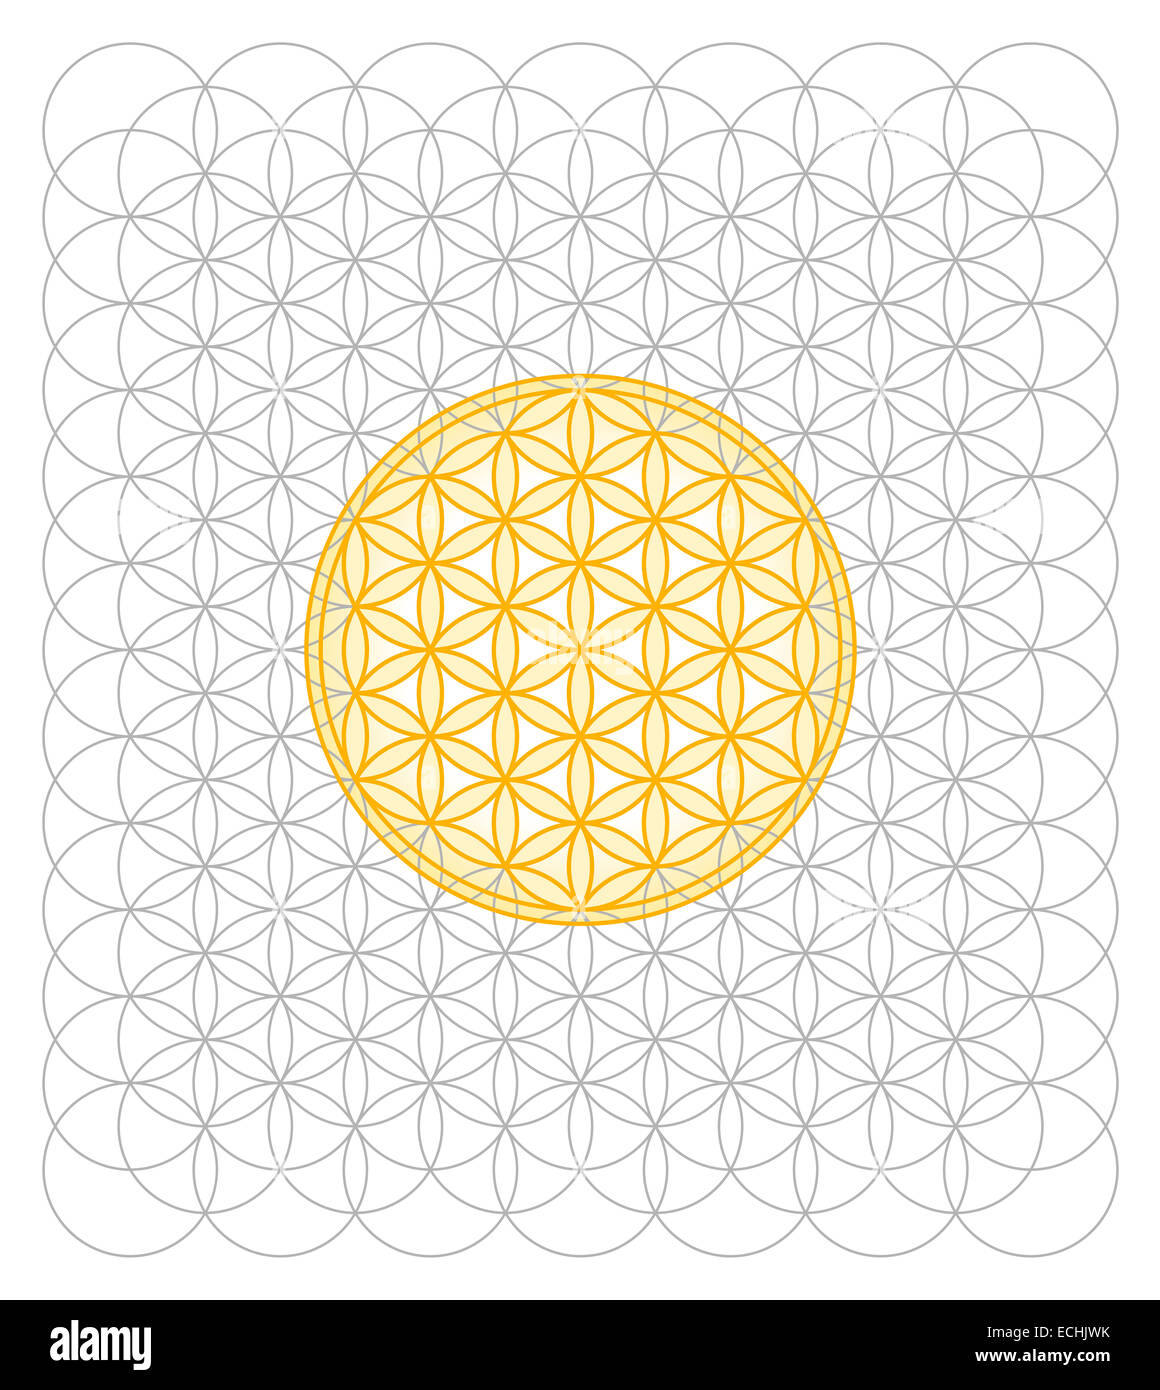 Development of Flower of Life from a sea of circles. Sacred geometry forming a flower-like pattern. Spiritual symbol. - Stock Image